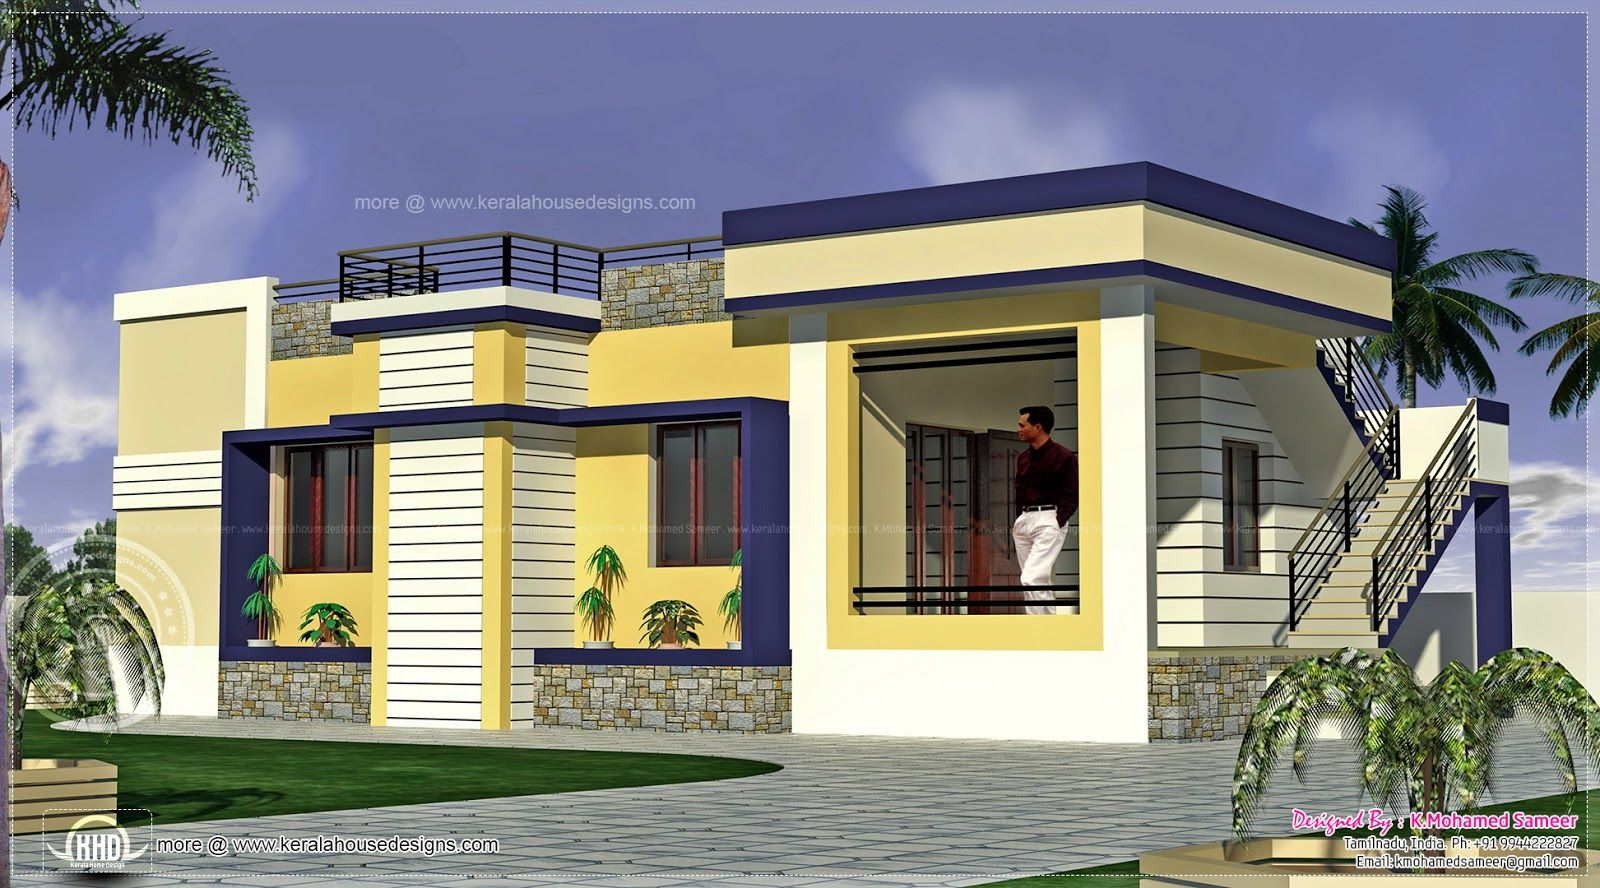 Tamil nadu house plans 1000 sq ft l for Traditional house designs in tamilnadu